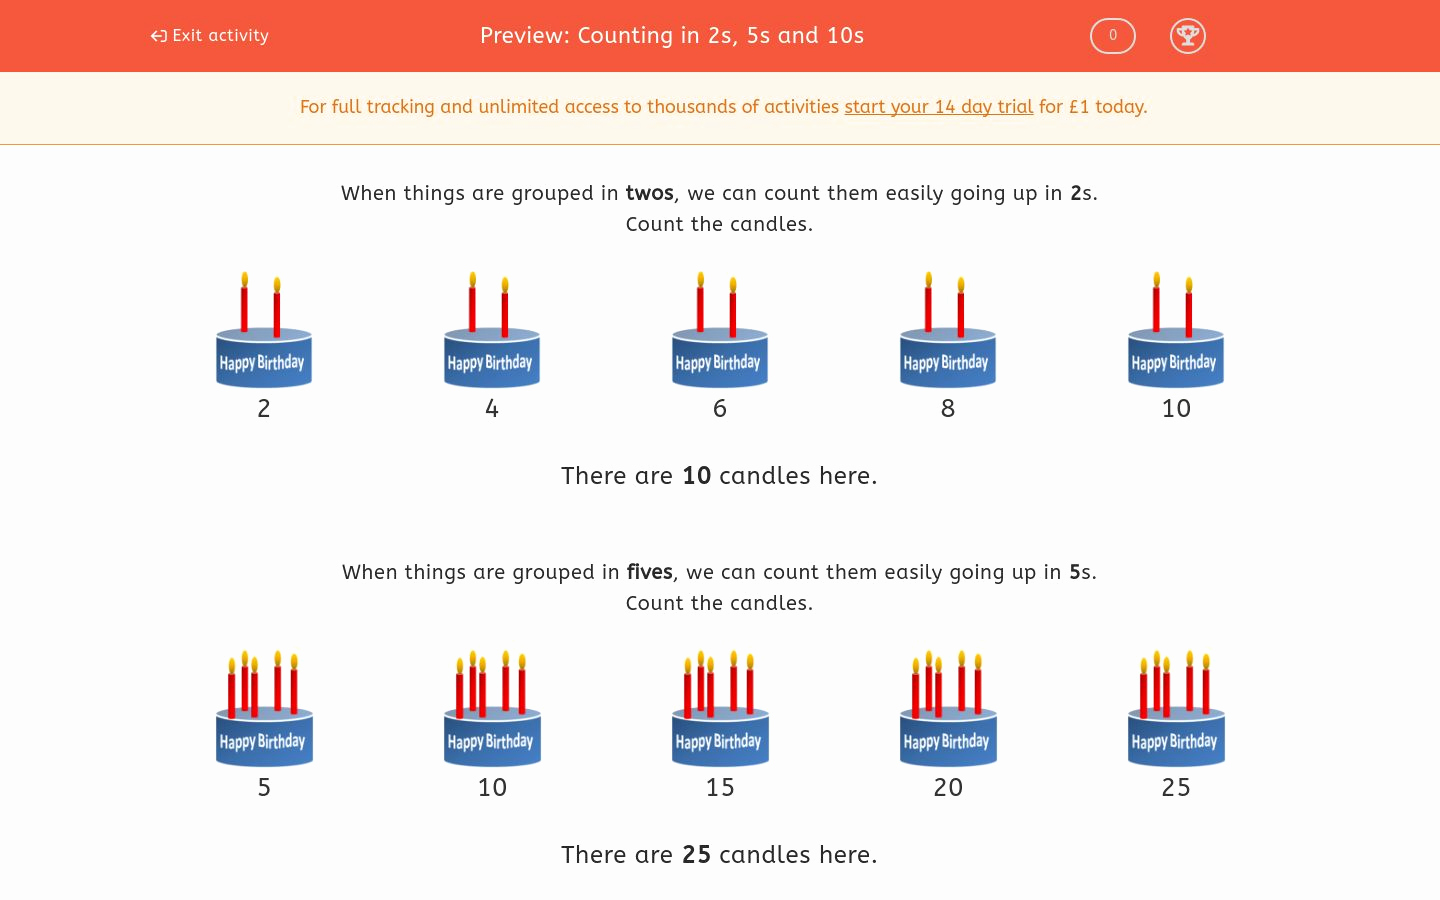 Counting In 10s Worksheet Luxury Counting In 2s 5s and 10s Worksheet Edplace